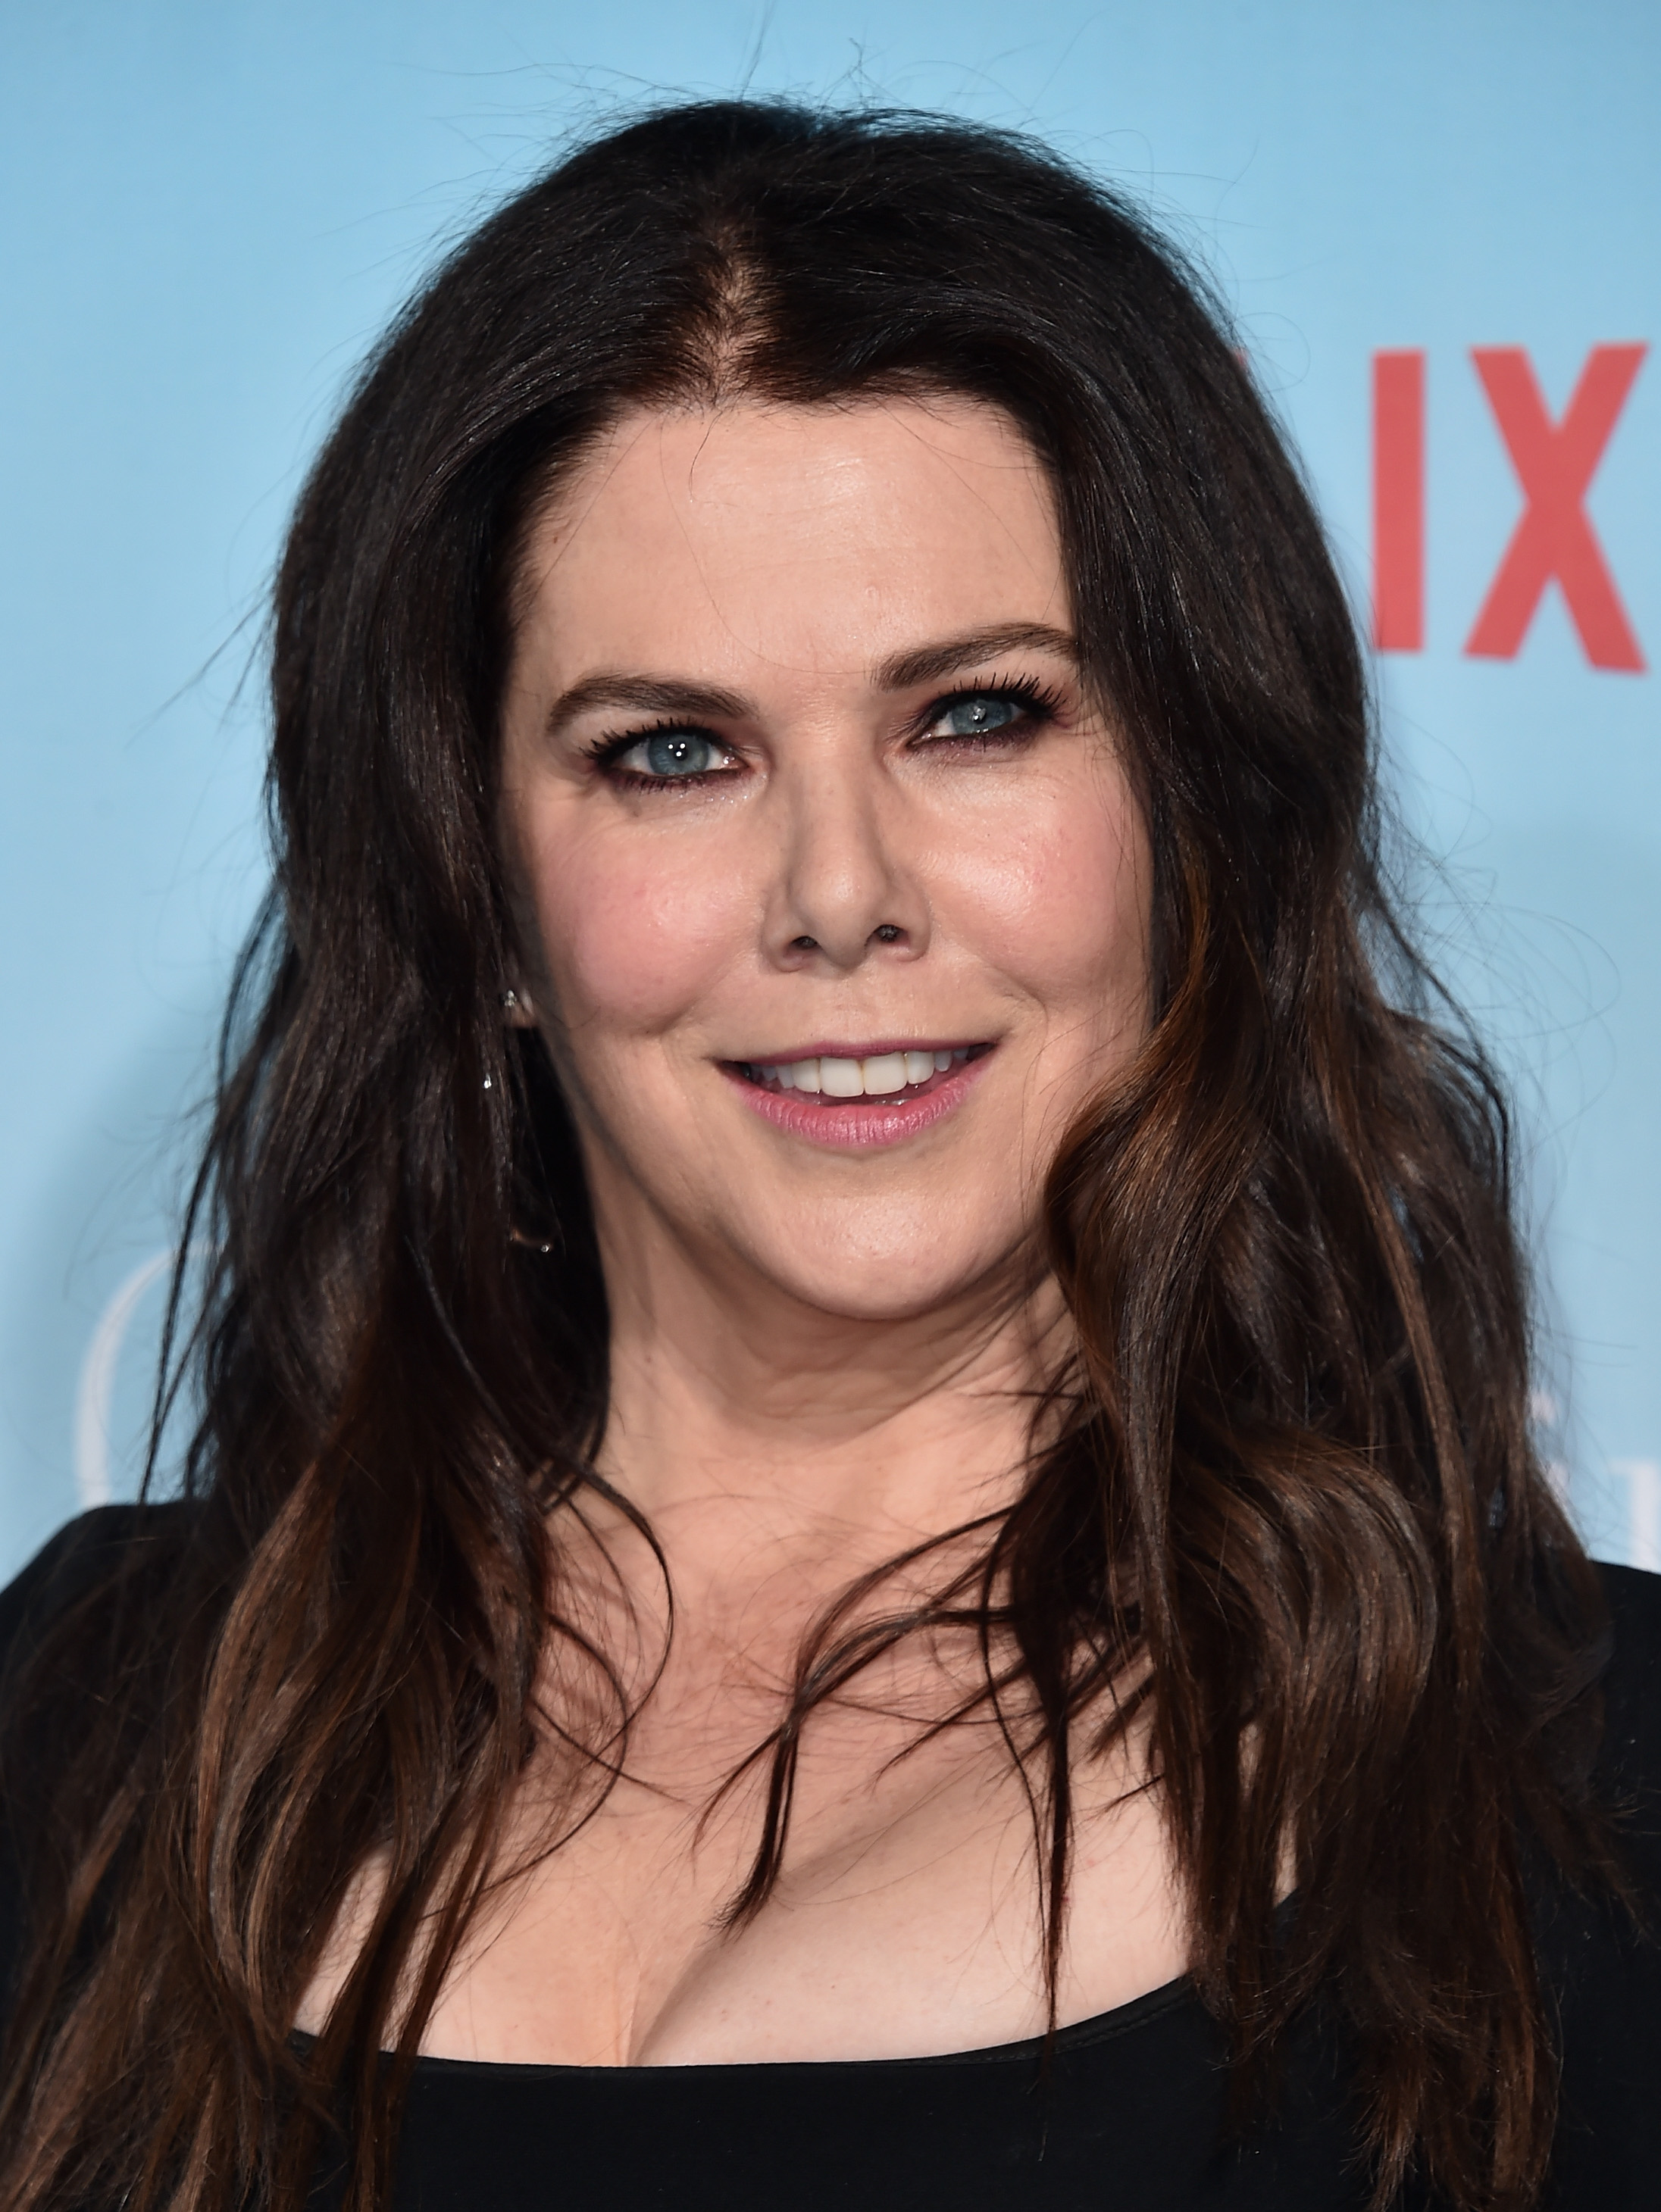 Lauren Graham nudes (61 photo), Sexy, Hot, Twitter, cameltoe 2015